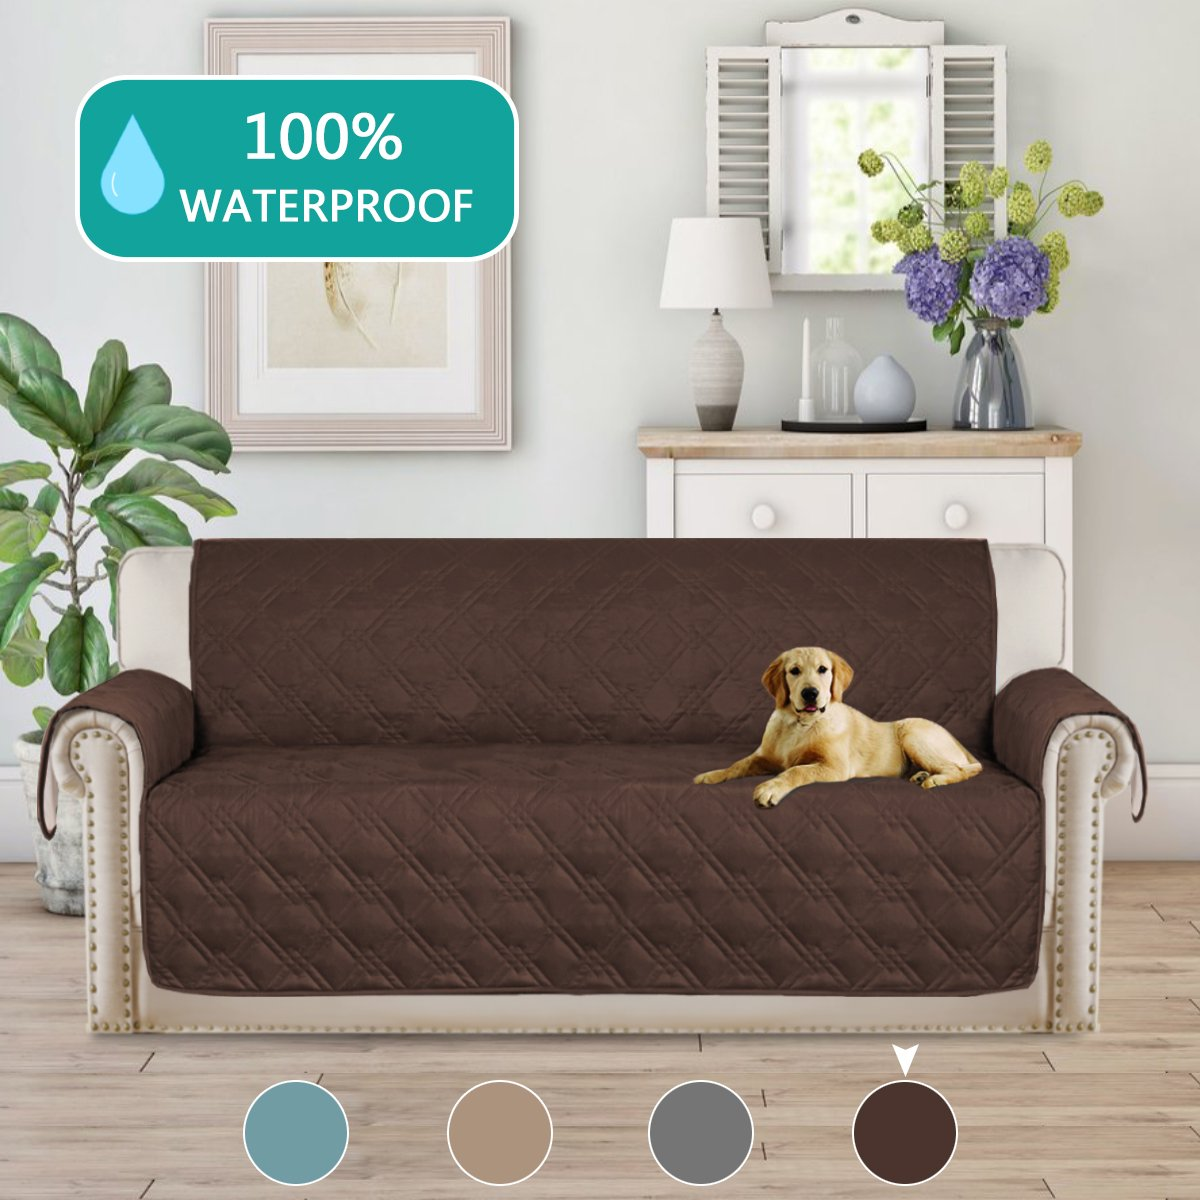 Turquoize Deluxe Quilted Furniture Protector Sofa Slipcover 100% Waterproof with Anti-Skip Little Dog Paw Print, Machine Washable, Slipcover Perfect for Pets and Kids(Sofa,75''x112'') Brown by Turquoize